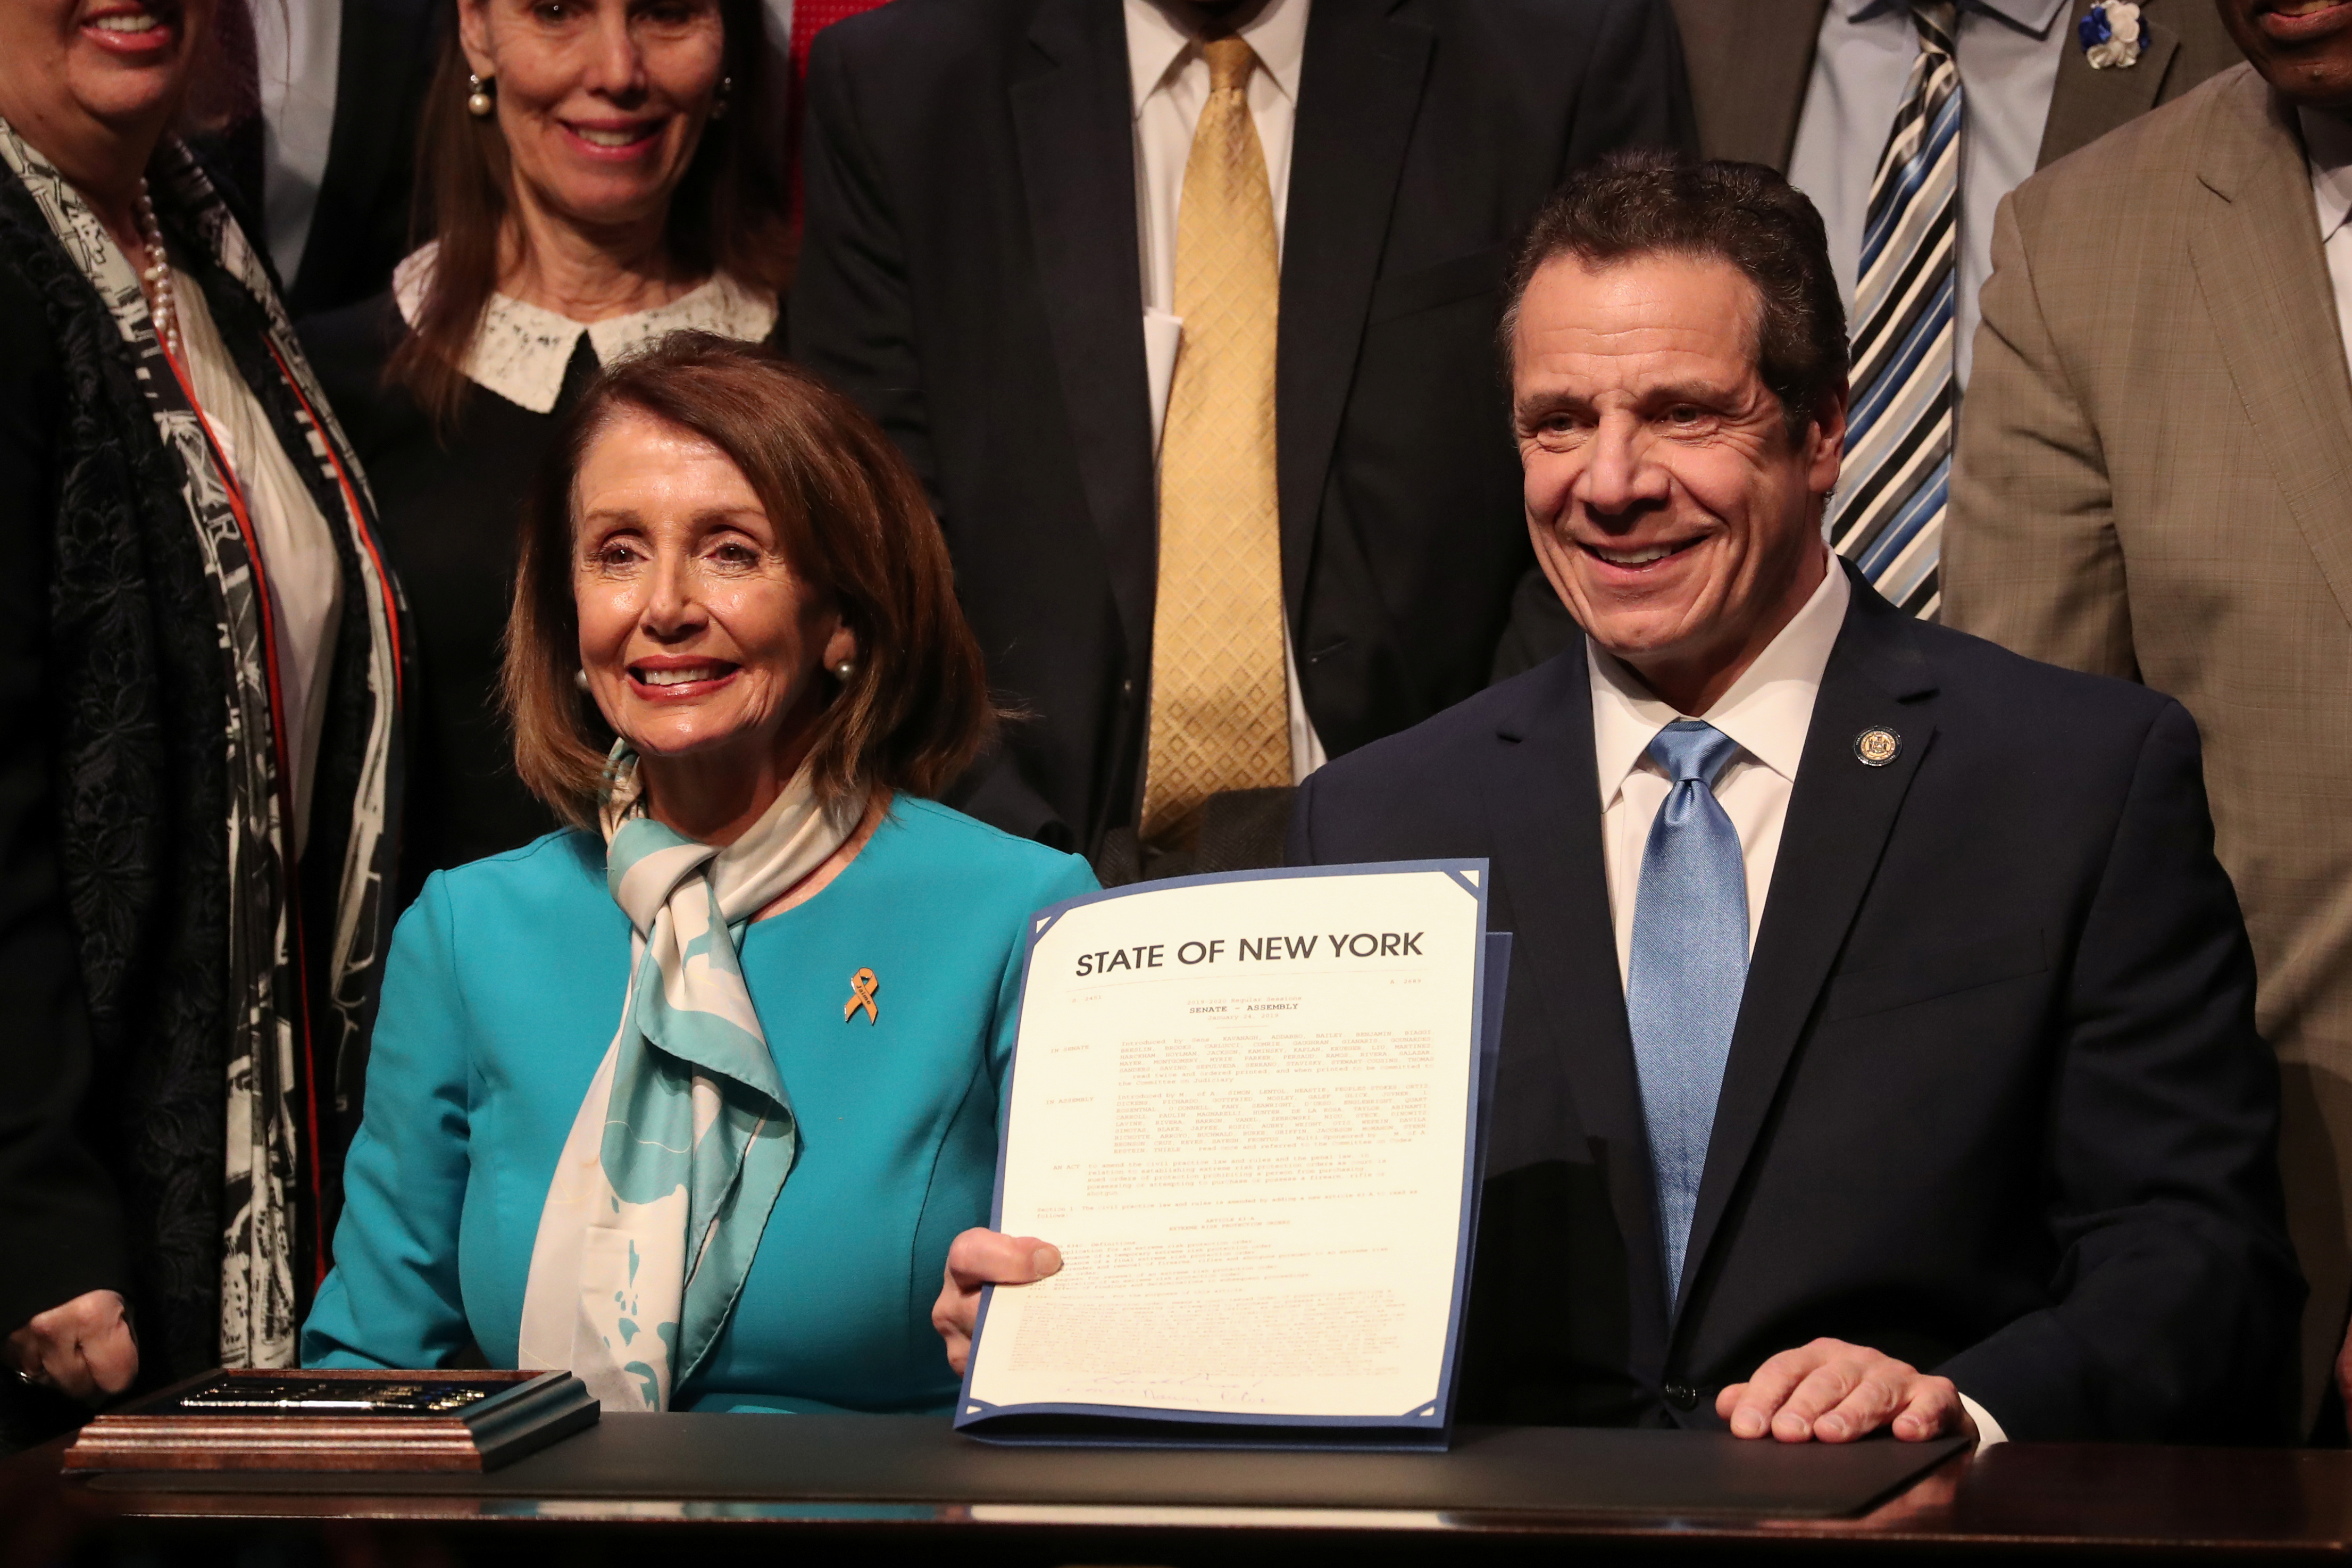 New York Governor Andrew Cuomo and U.S. Speaker of the House Nancy Pelosi (D-CA) smile after signing the Red Flag bill, also known as the Extreme Risk Protection Order bill, in New York